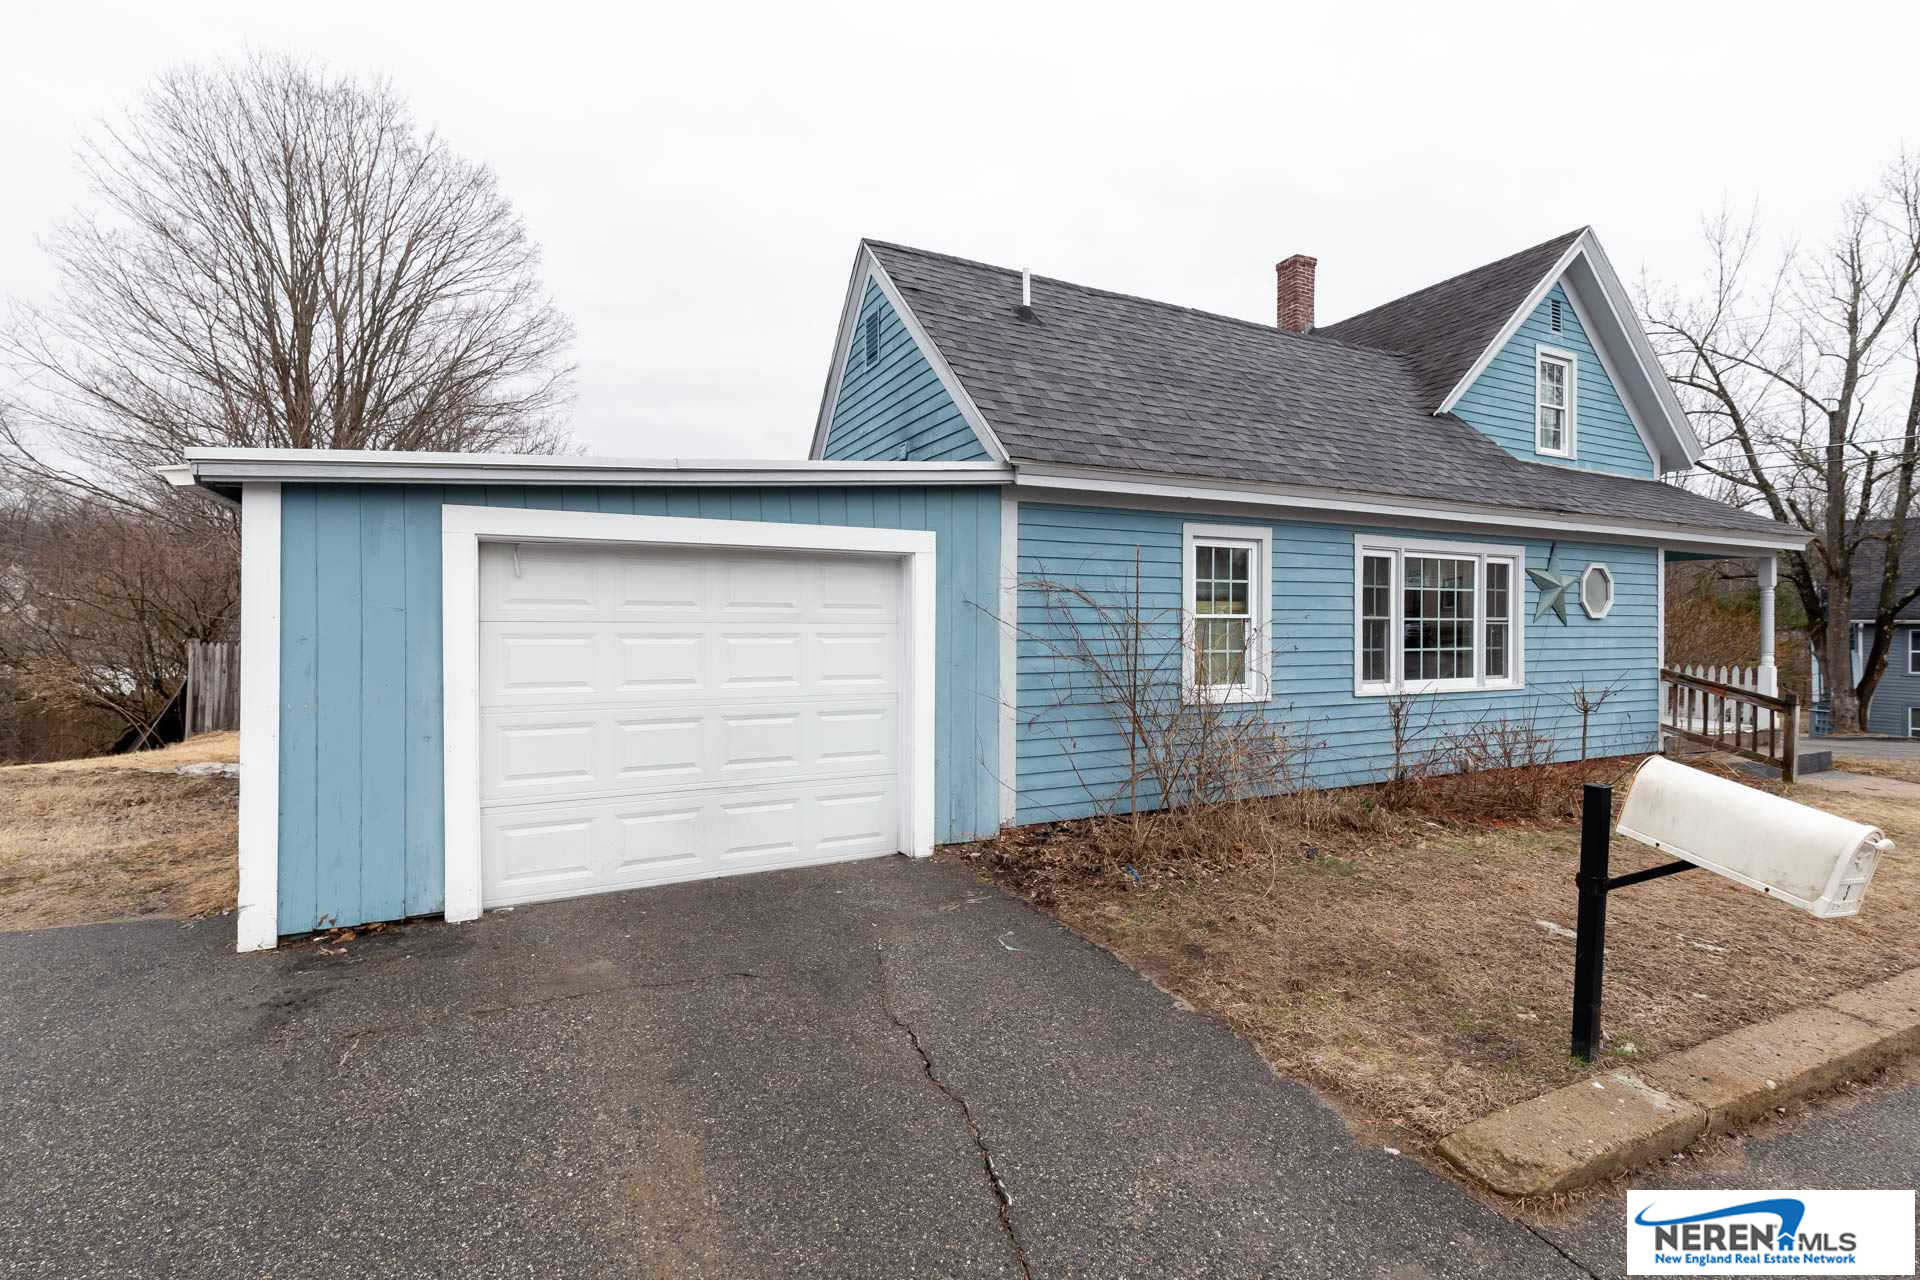 3 Glen Street, Farmington, NH 03835 is now new to the market!